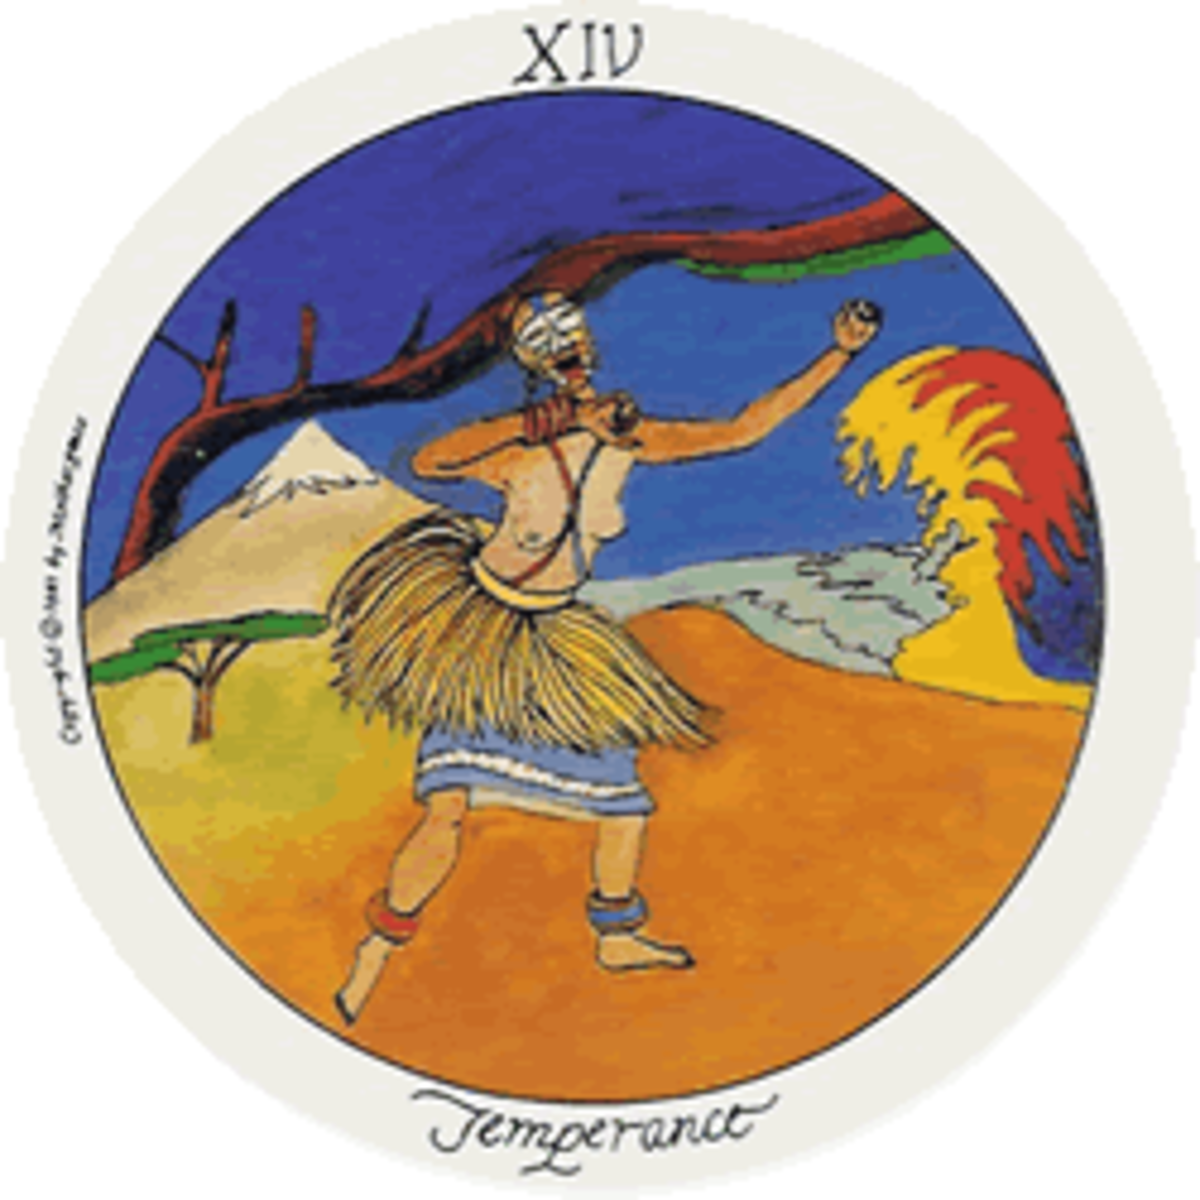 The Temperance card is a time of trying to find balance in life.